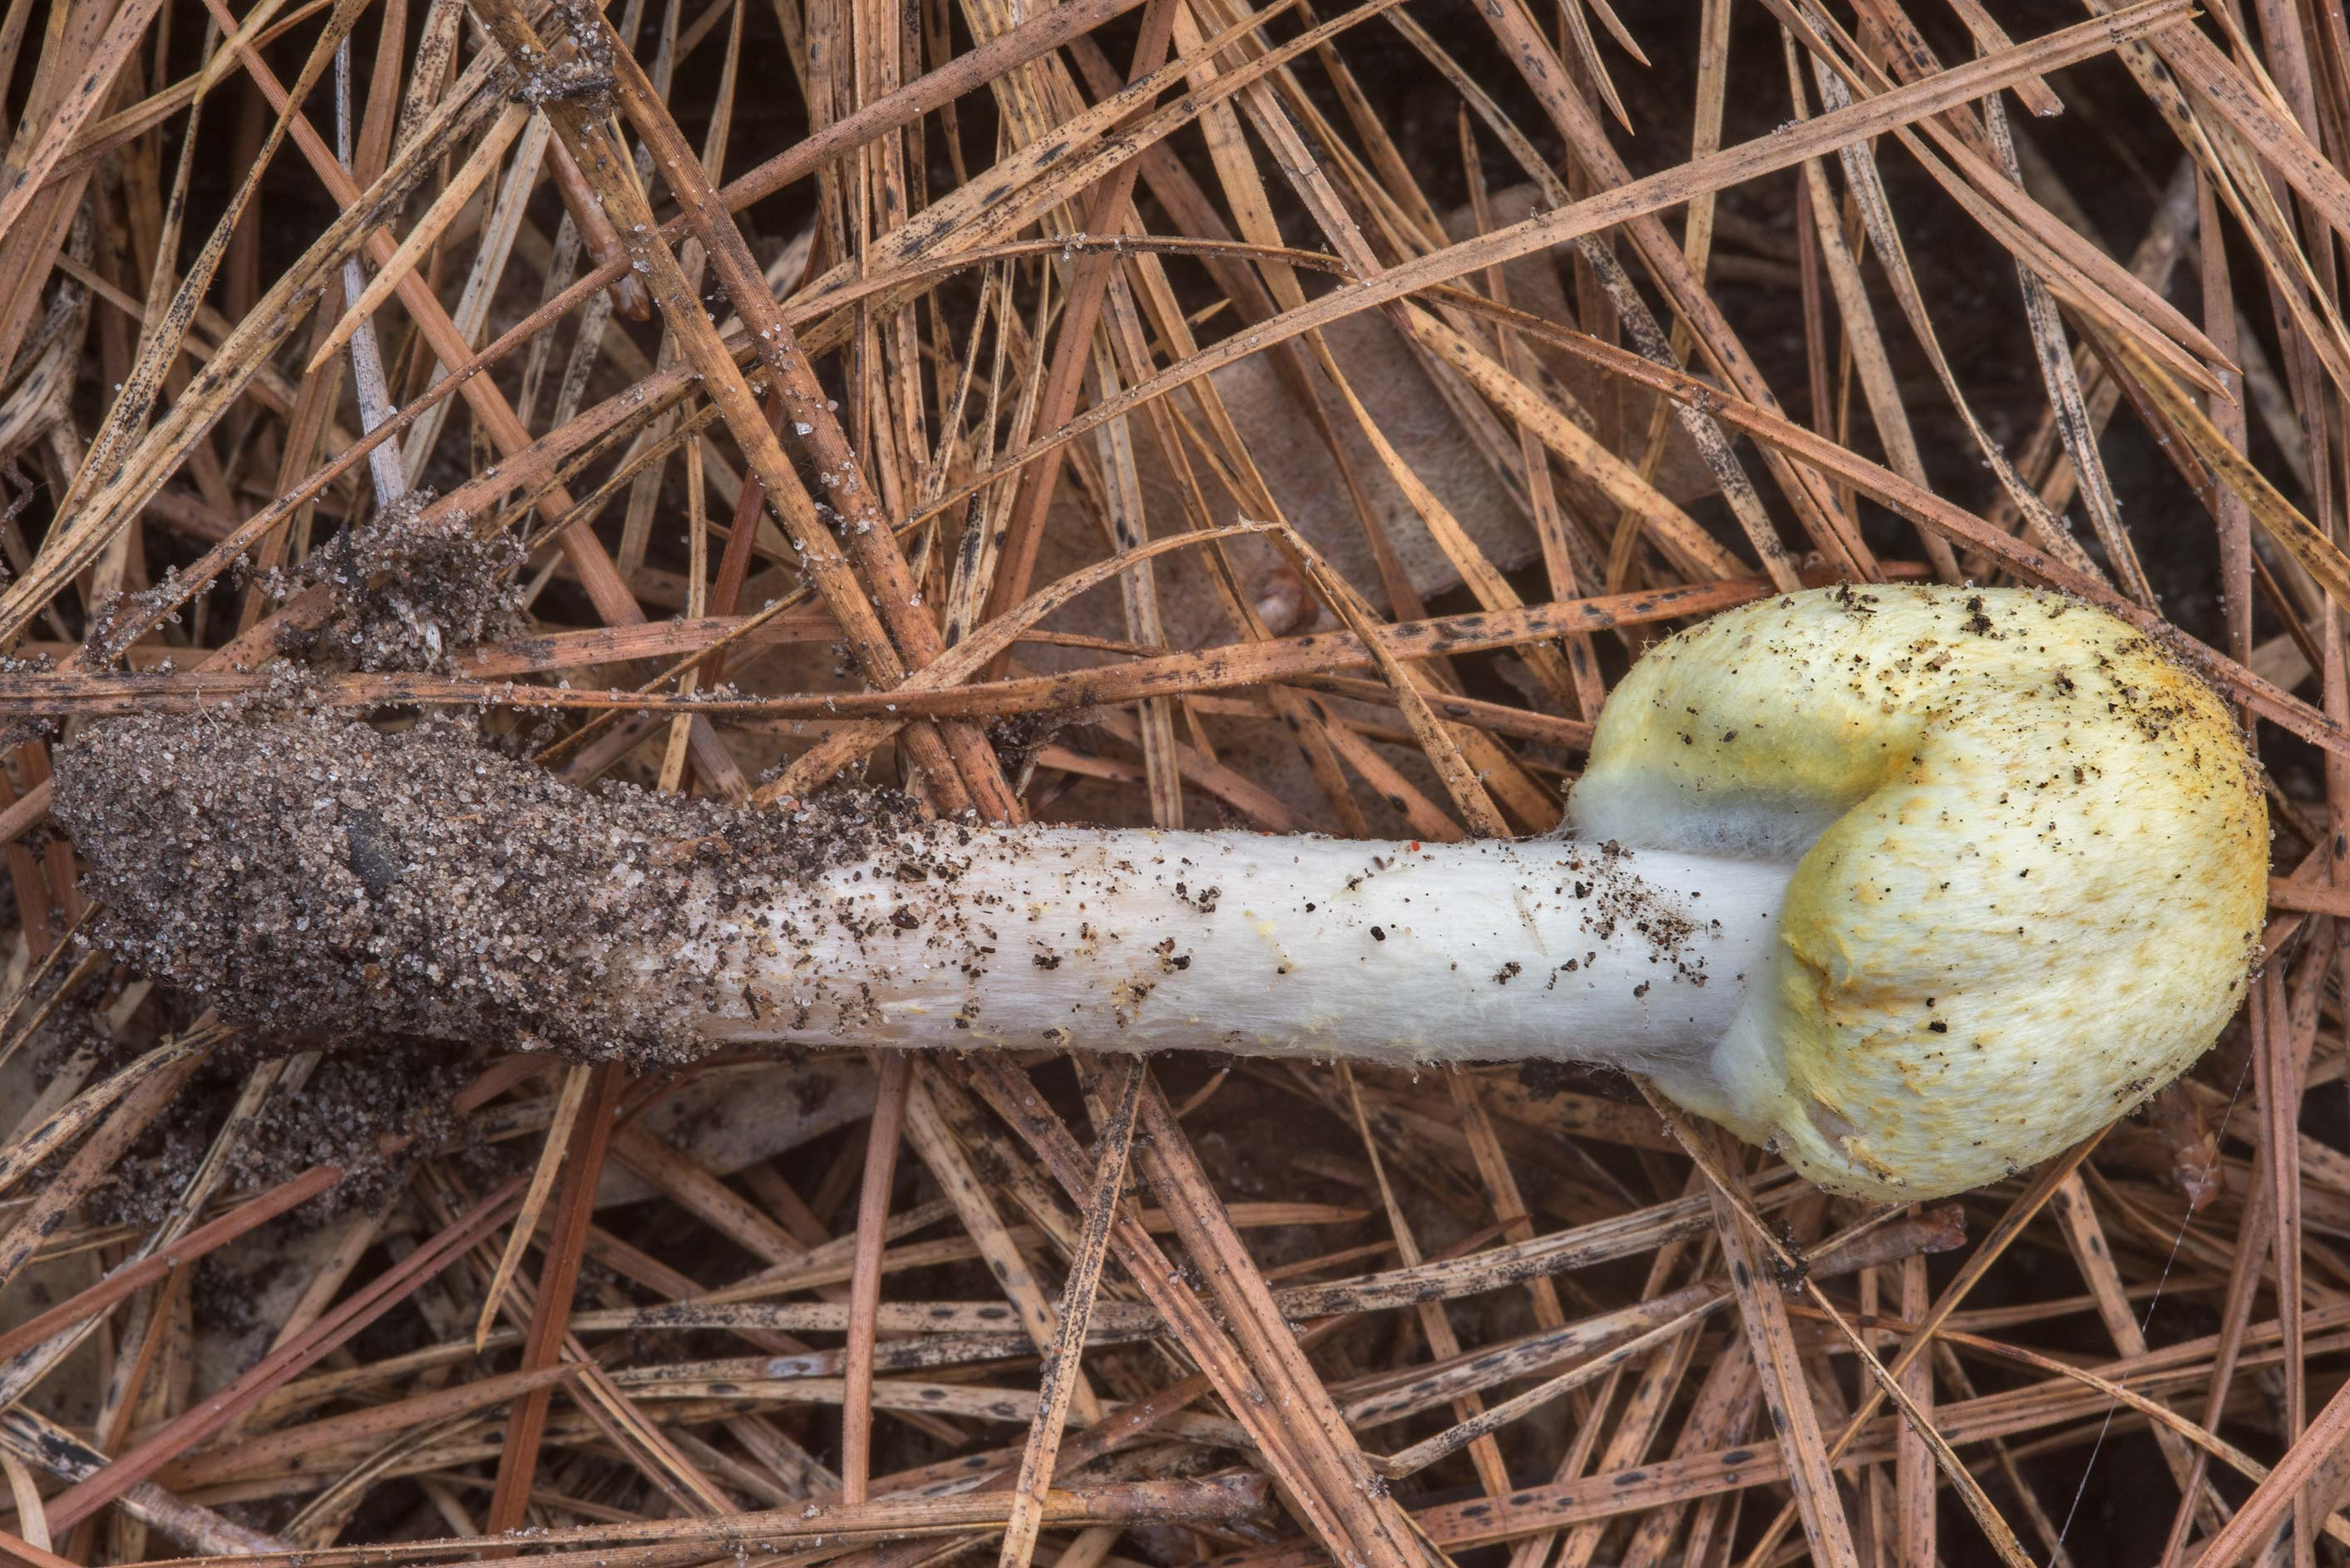 Agaricus auricolor mushroom in a pine forest on...National Forest near Huntsville, Texas